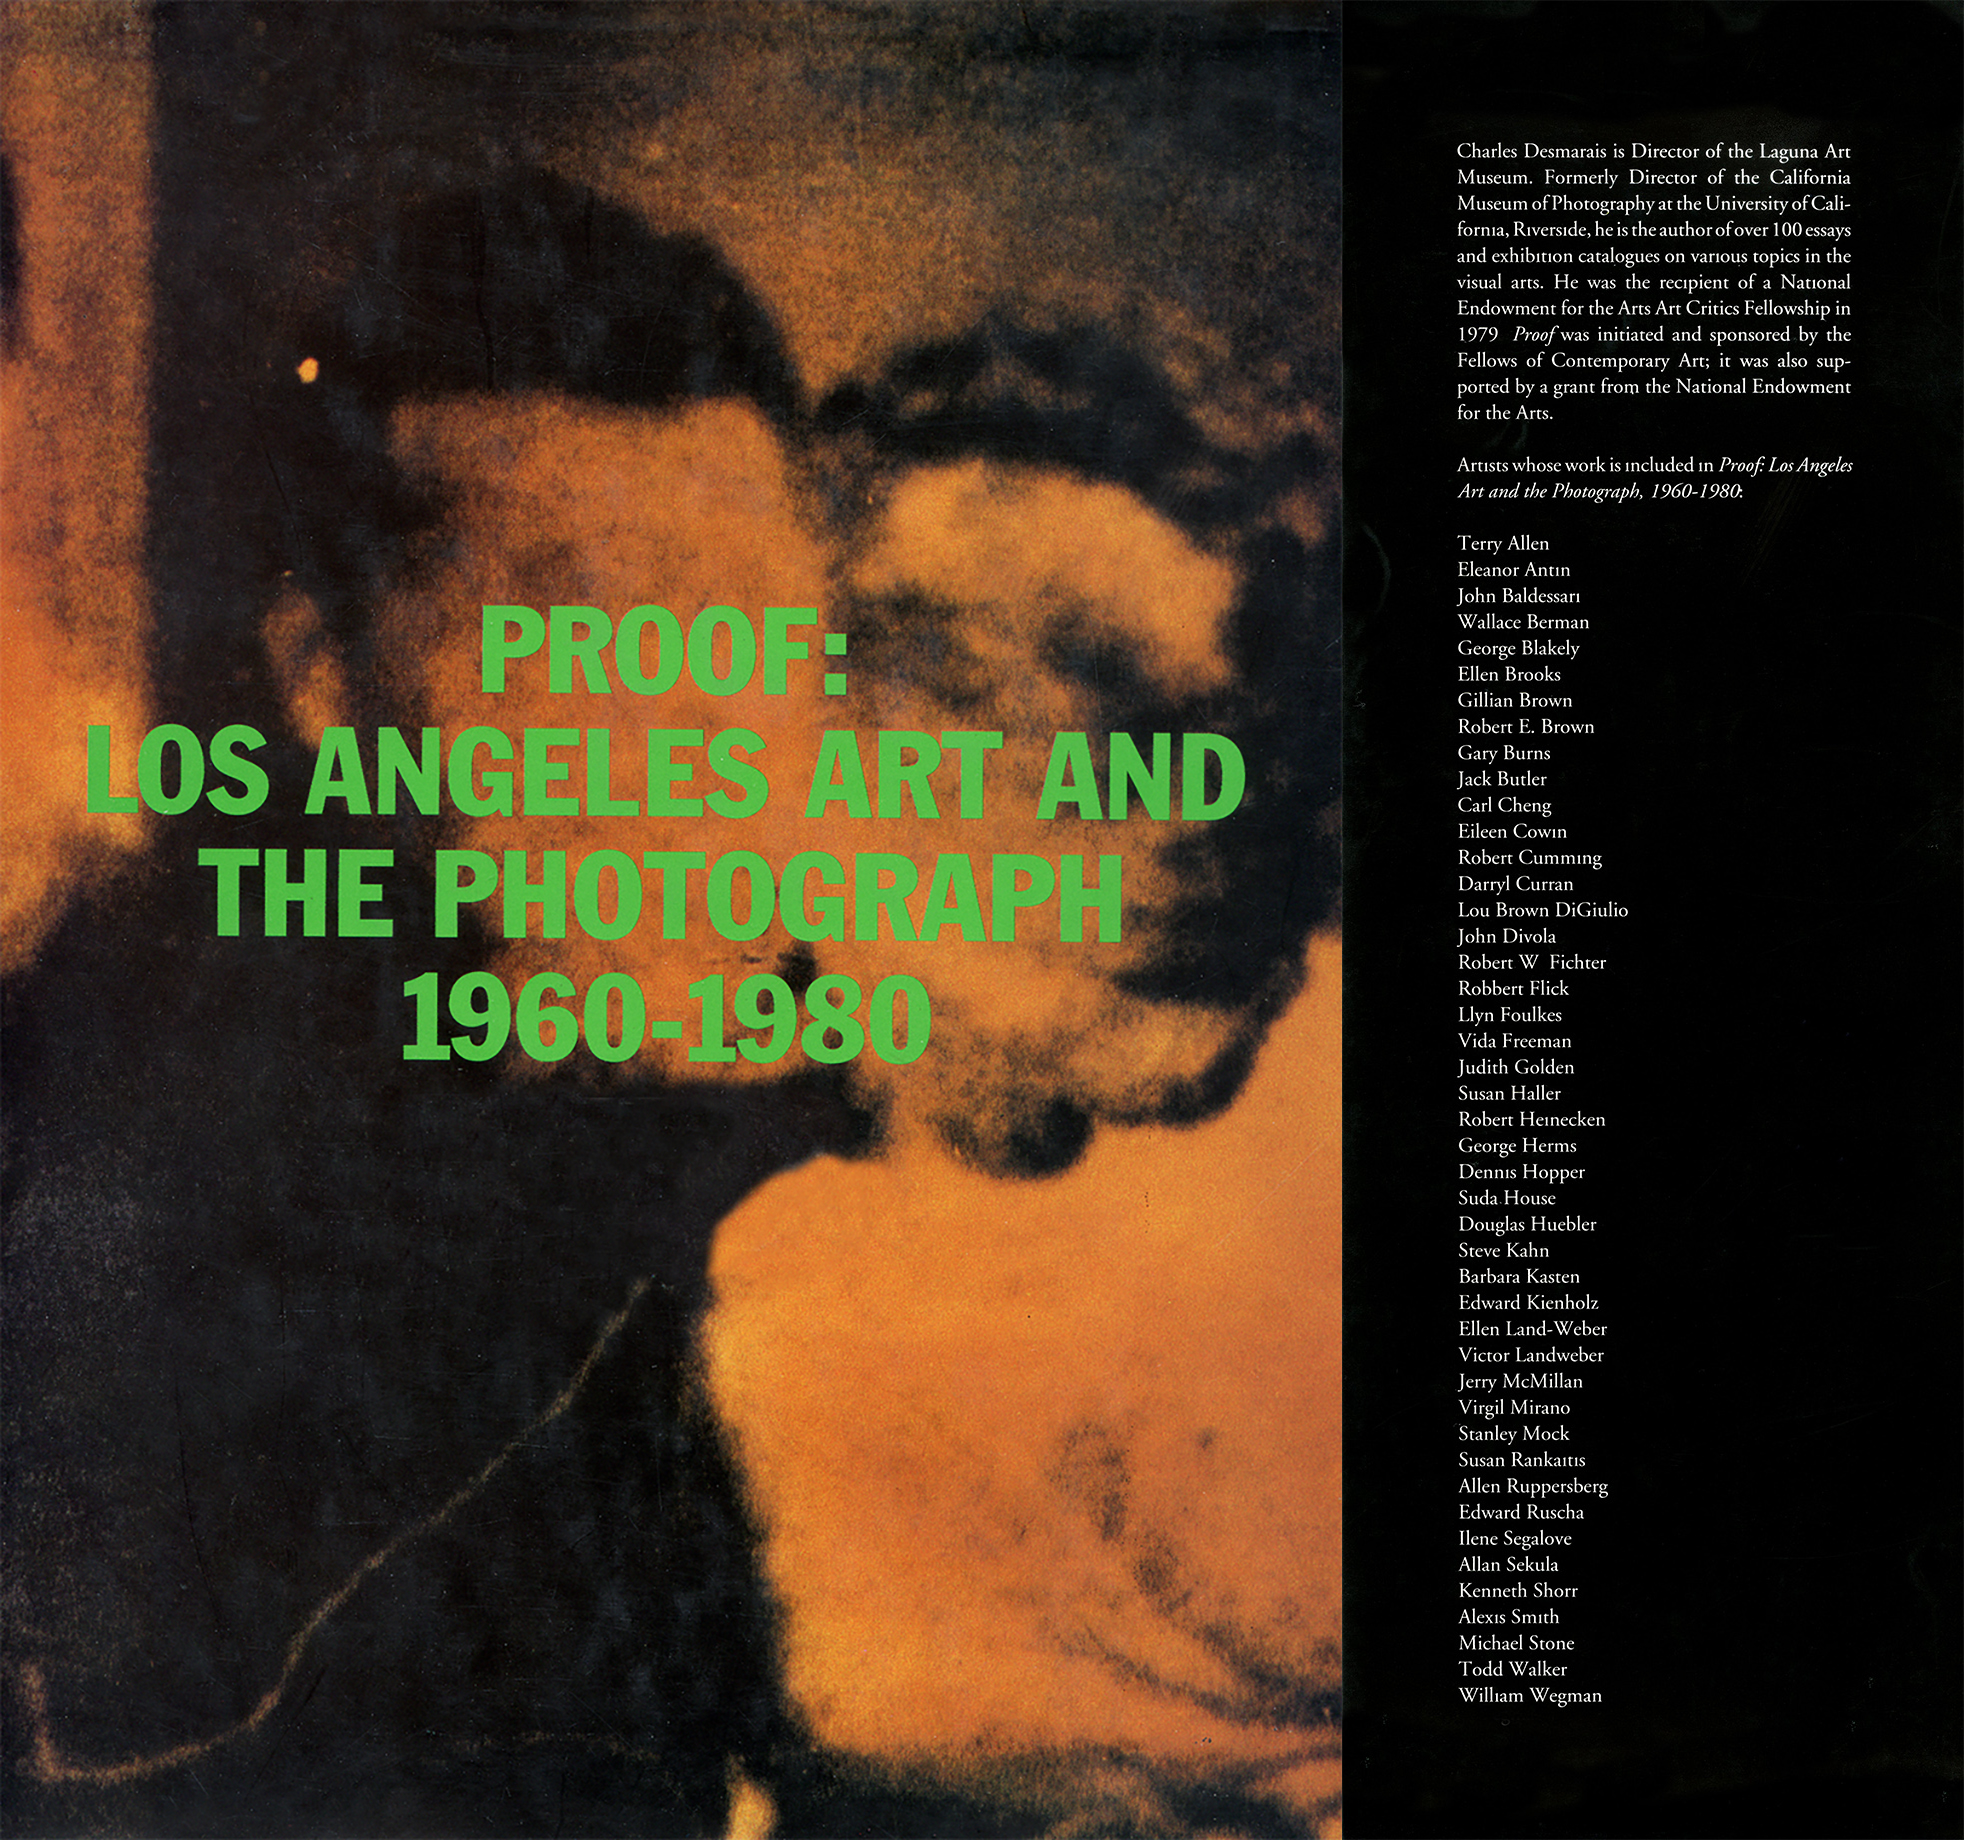 Proof: Los Angeles Art and the Photograph 1960-1980